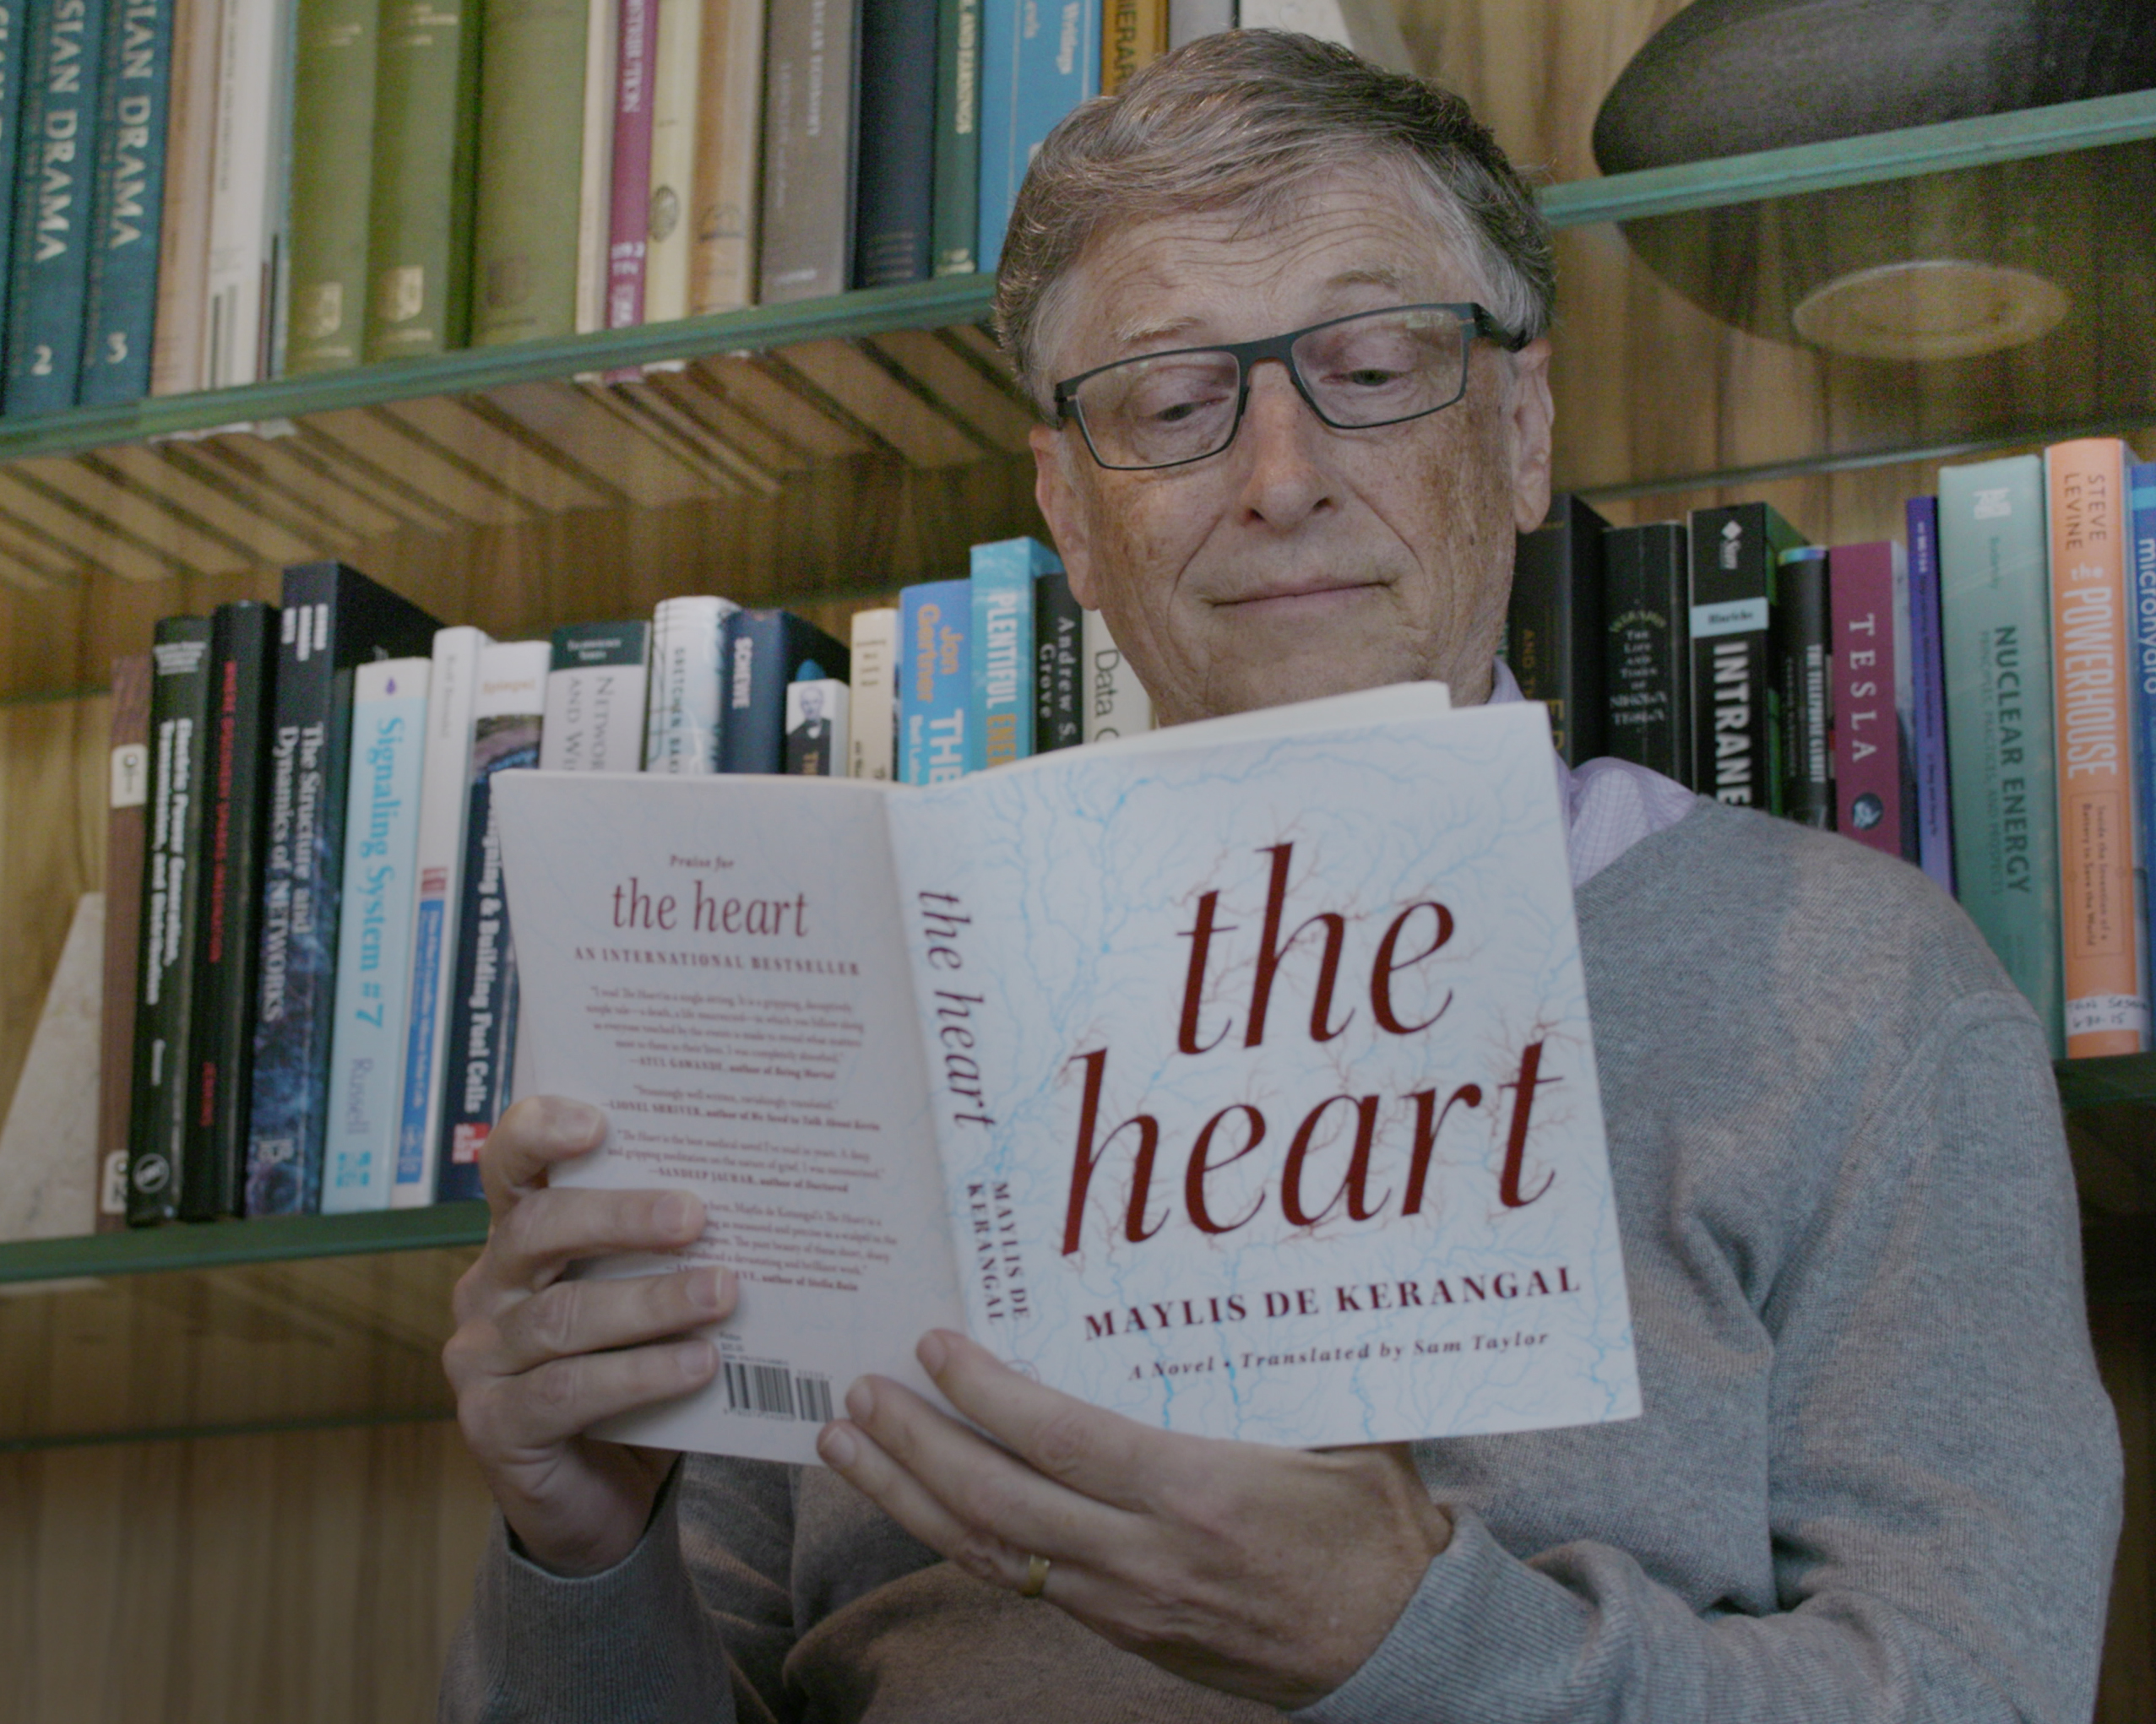 Bill Gates Discusses His Love for Books and Reading